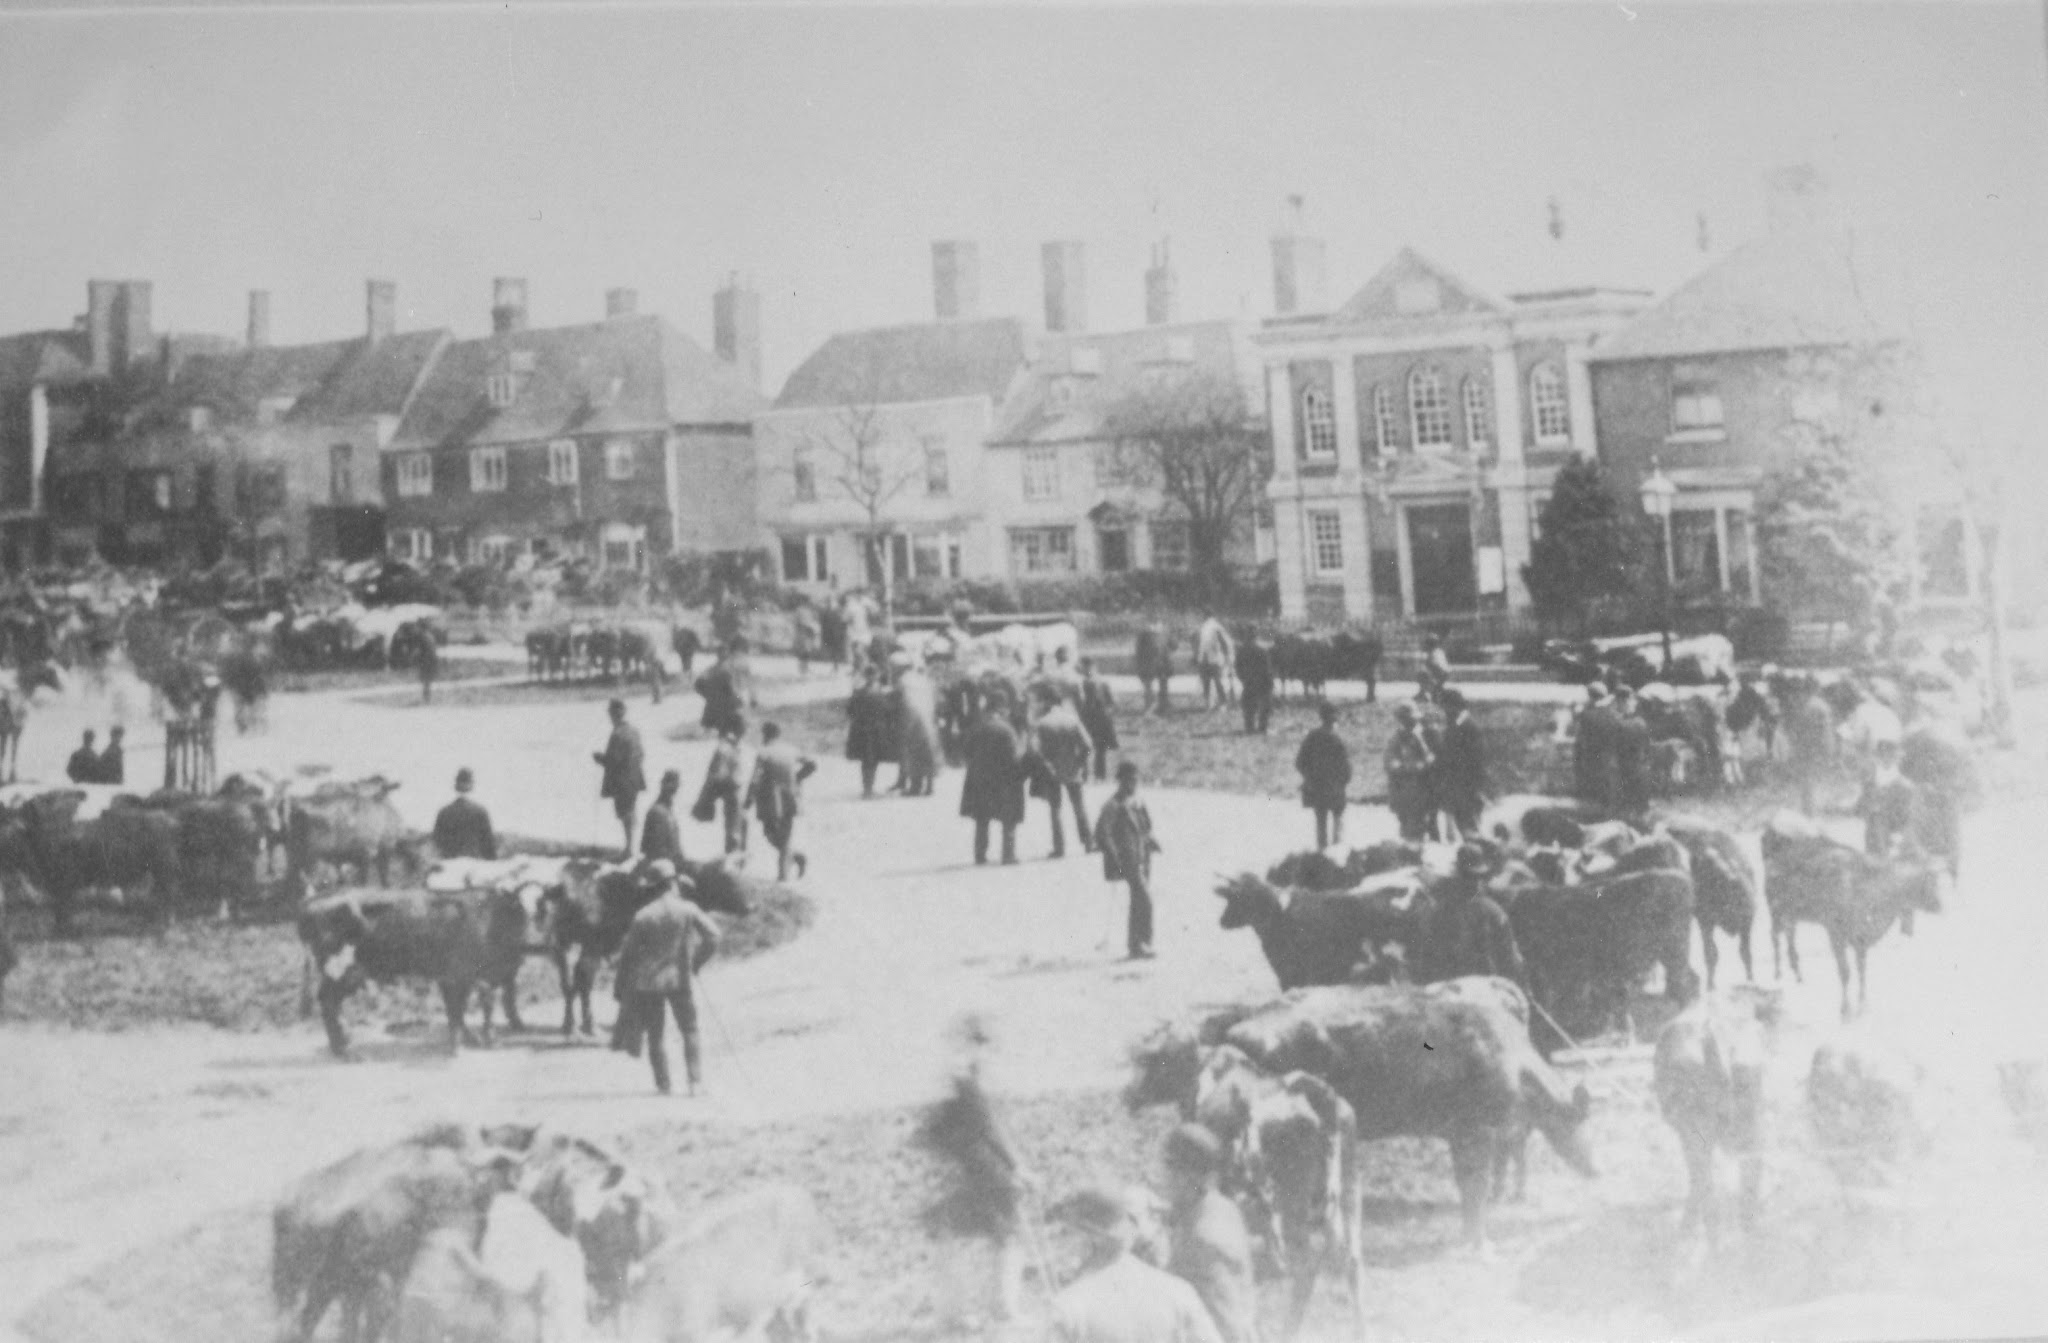 Tenterden Archive photos - Tenterden Market – Cattle and Sheep